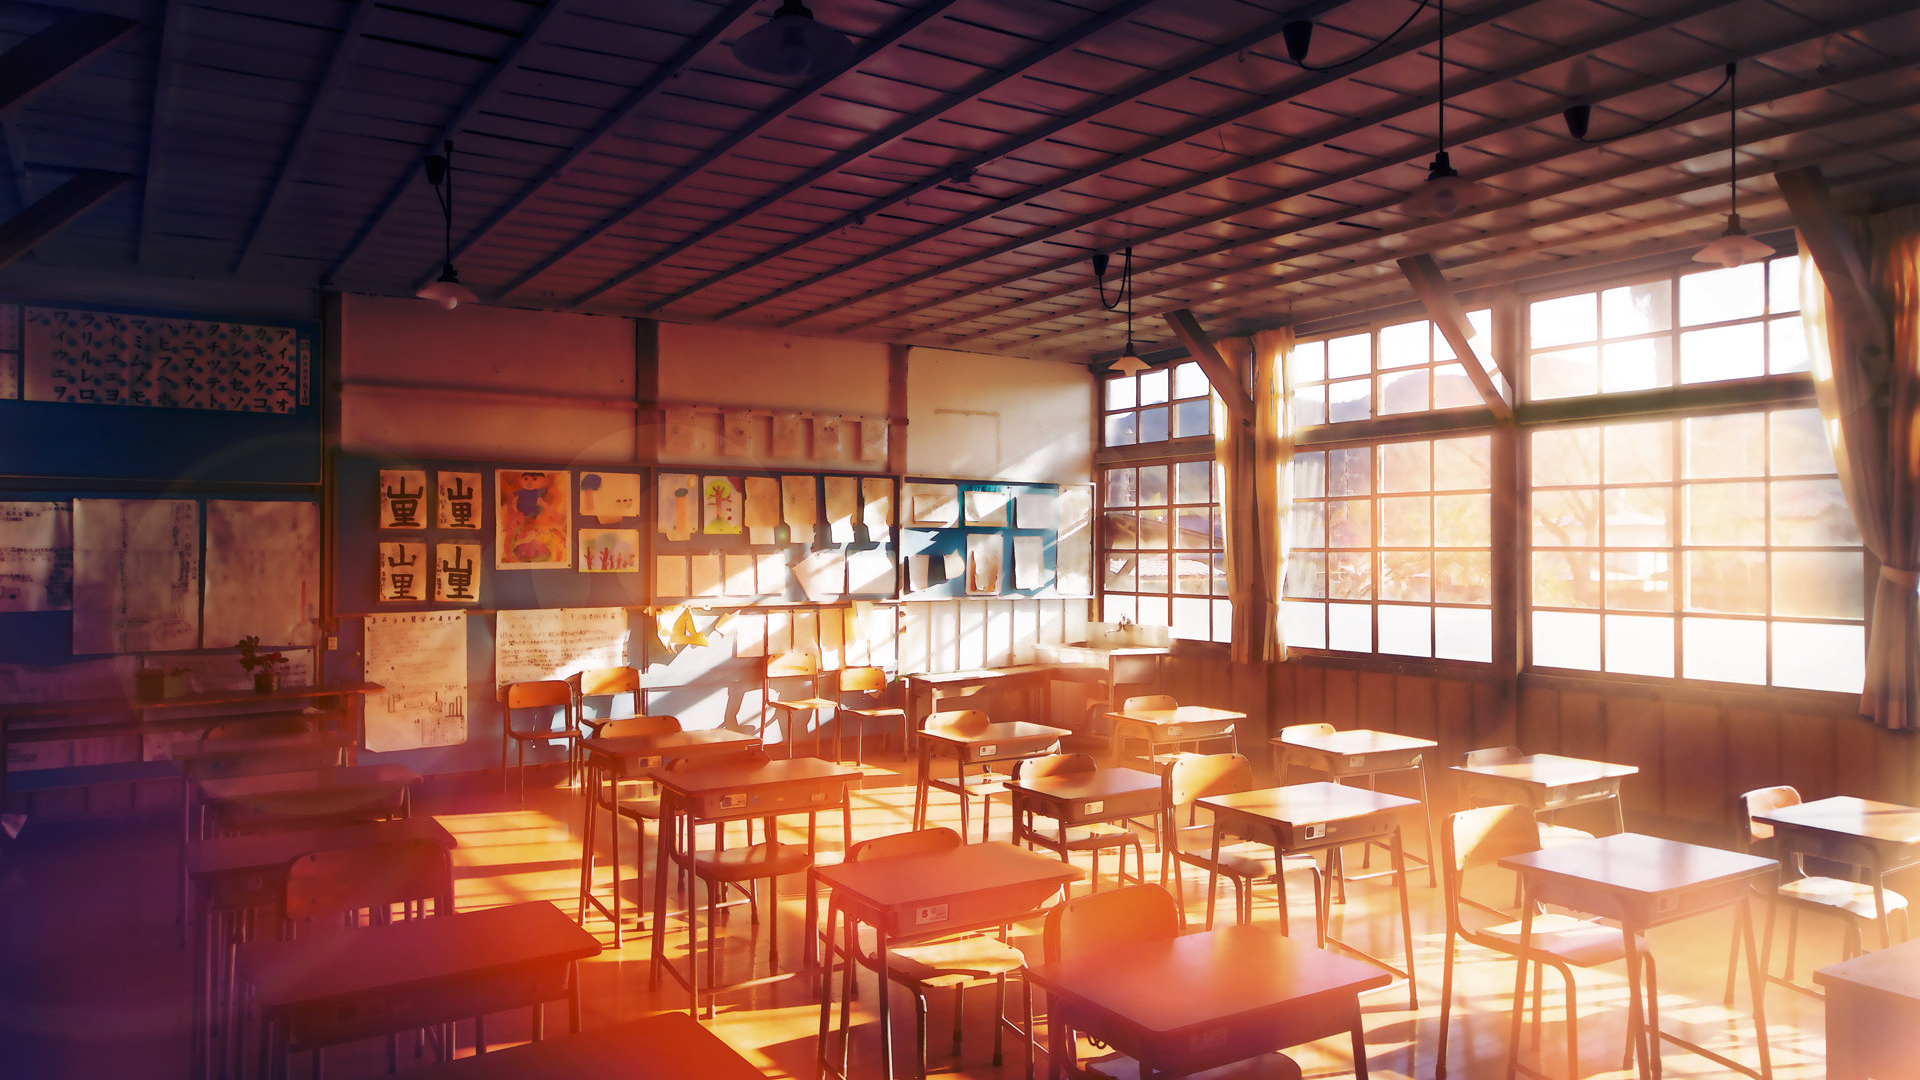 Scenic Empty Classroom Brings Nostalgia To Me 1920x1080 1920x1280 Need IPhone 6S Plus Wallpaper Background For IPhone6SPlus